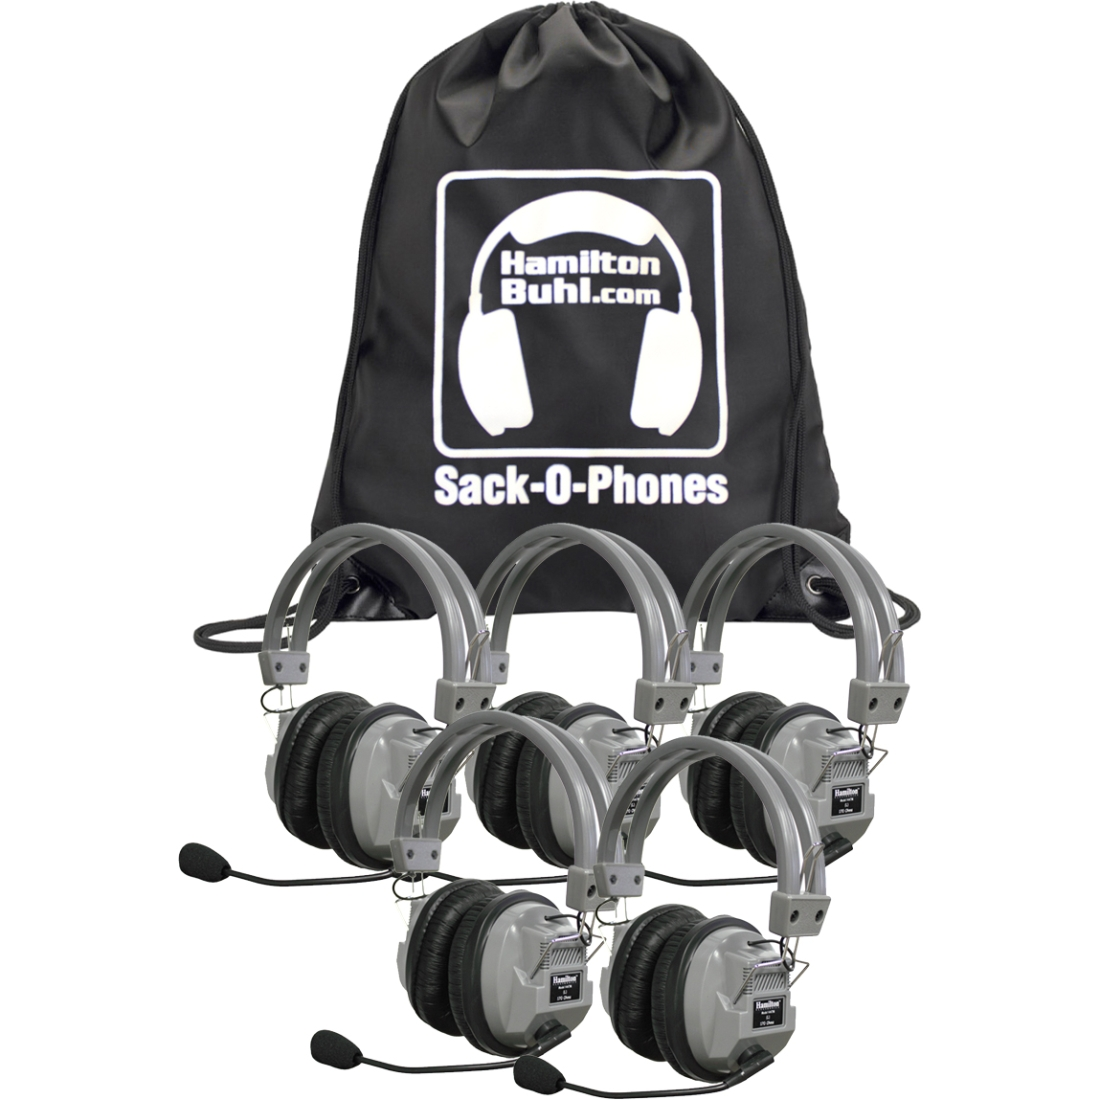 Hamilton Buhl Sack-O-Phones, 5 HA7M Deluxe Headphones w/ Mic in A Carry Bag (sop-ha7m)